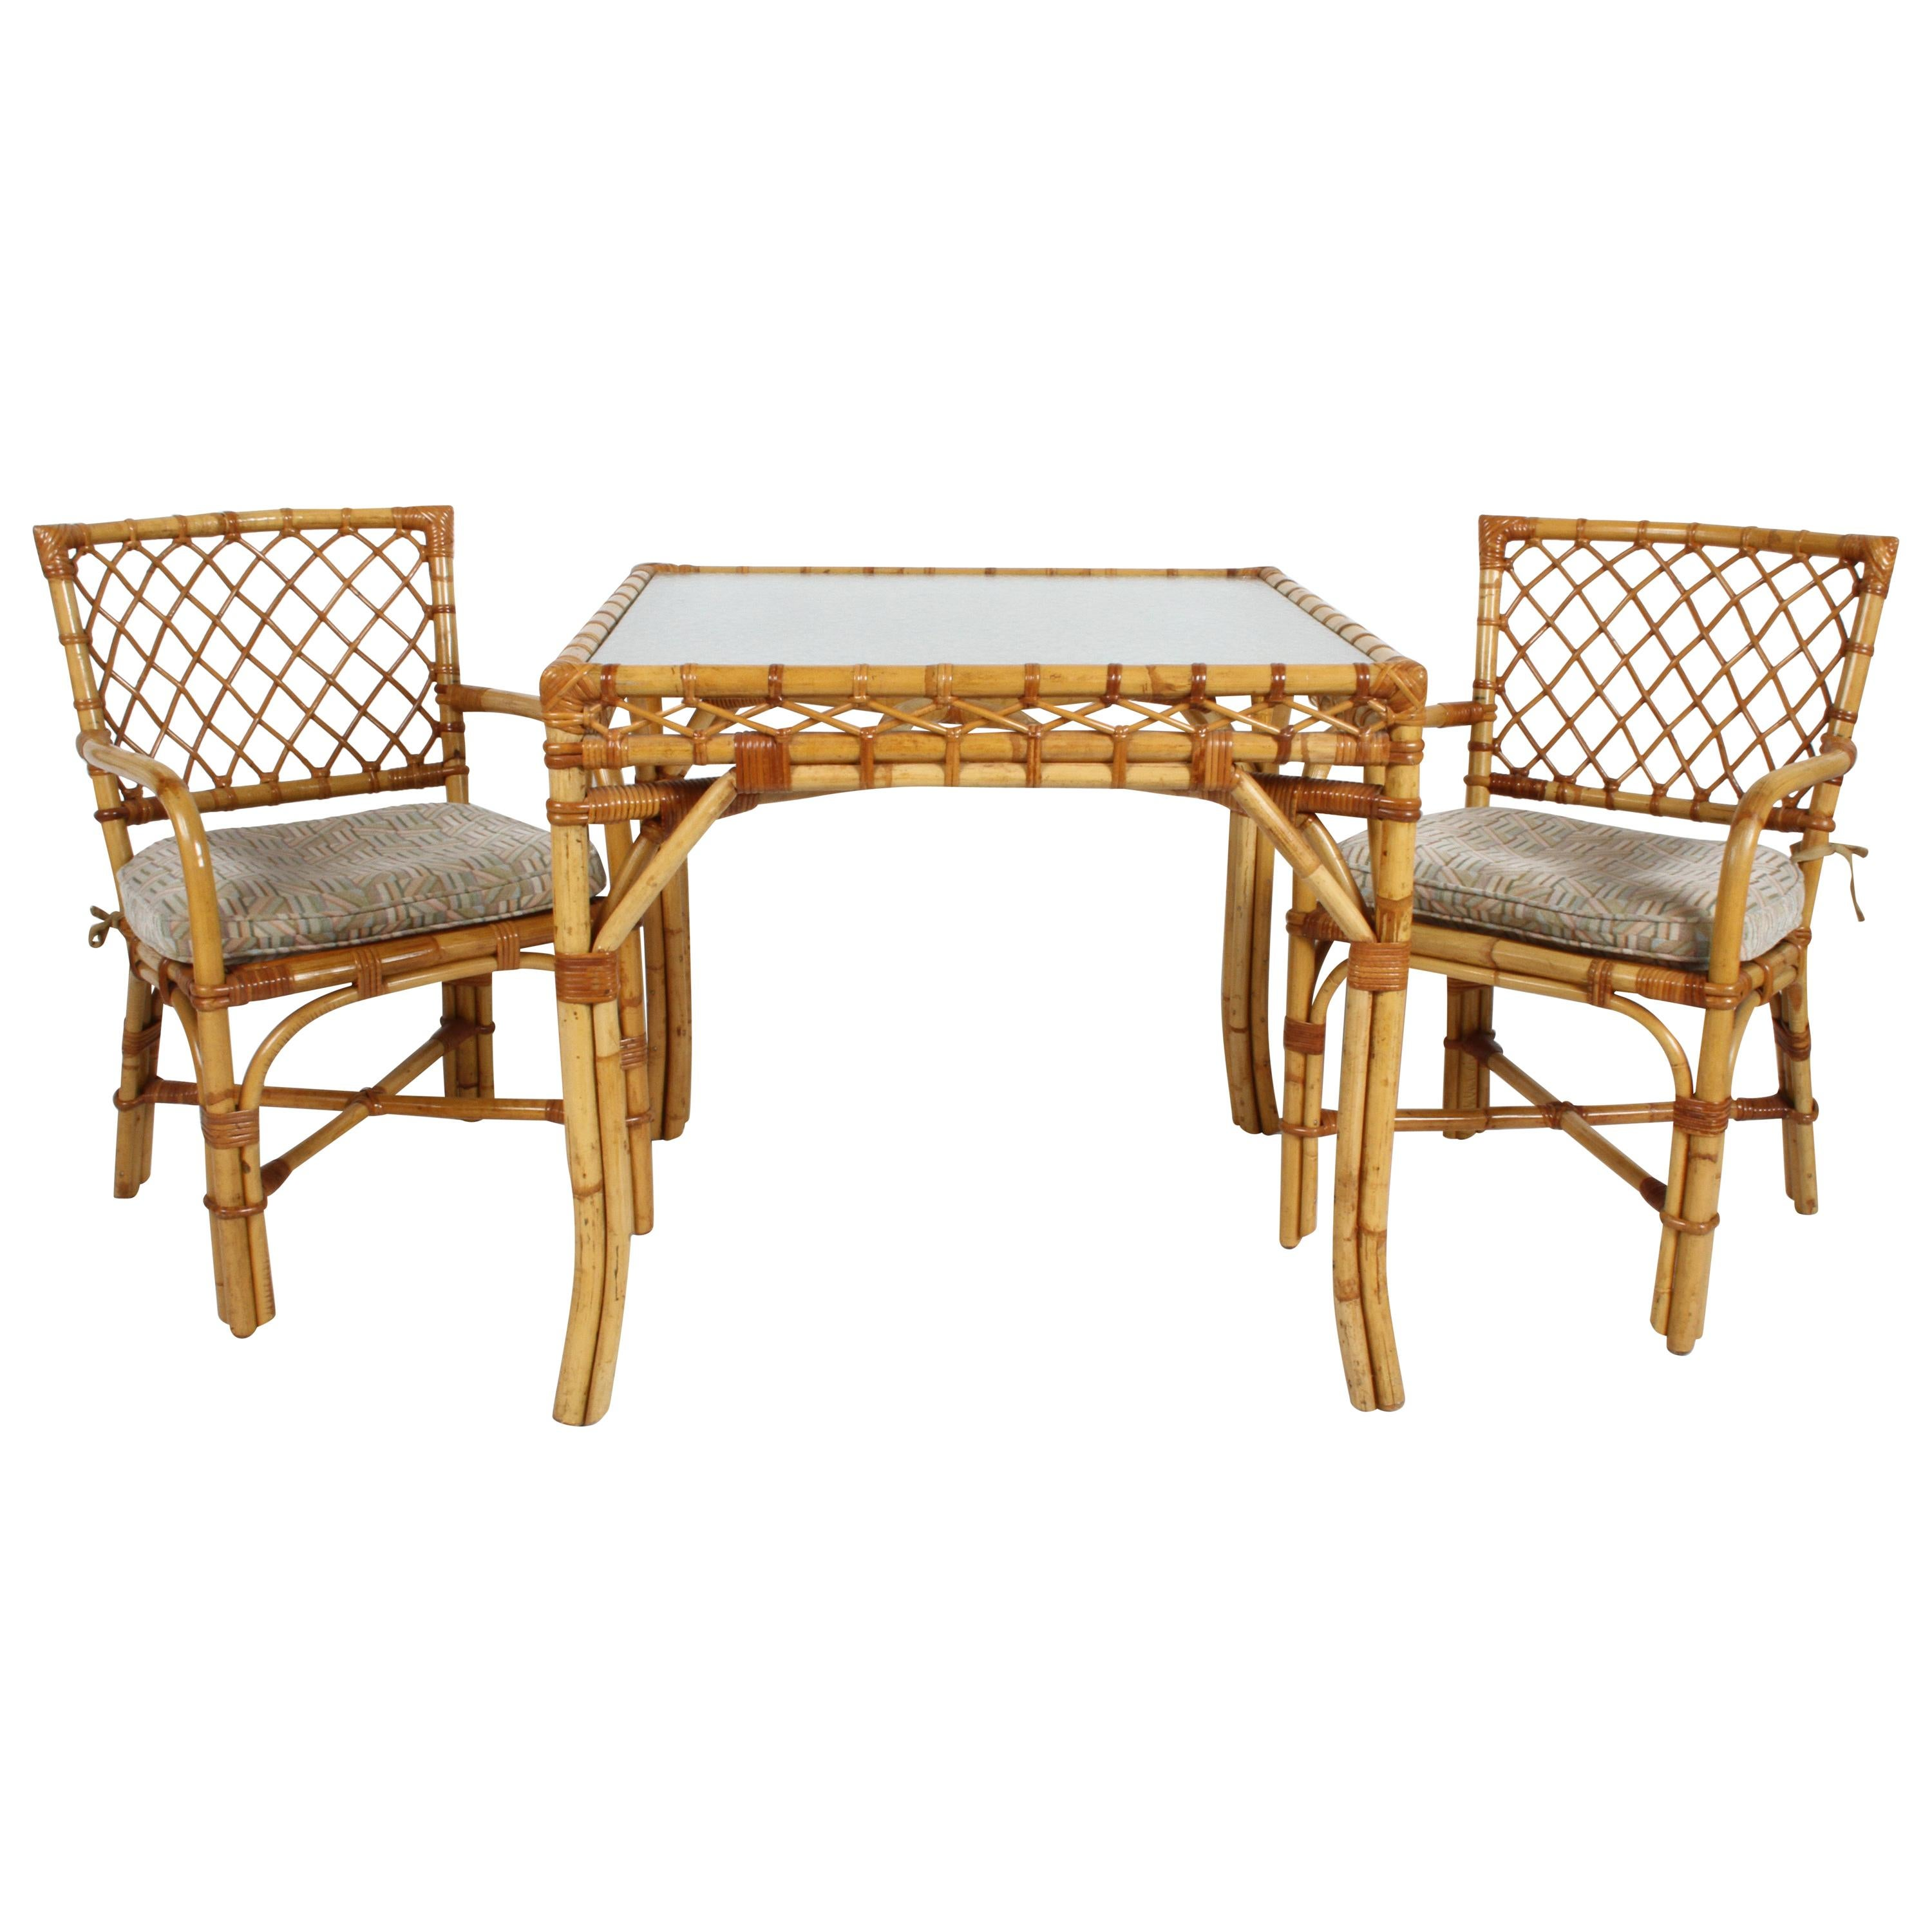 Bielecky Brothers Rattan and Glass Card / Dining Table with Two Armchairs